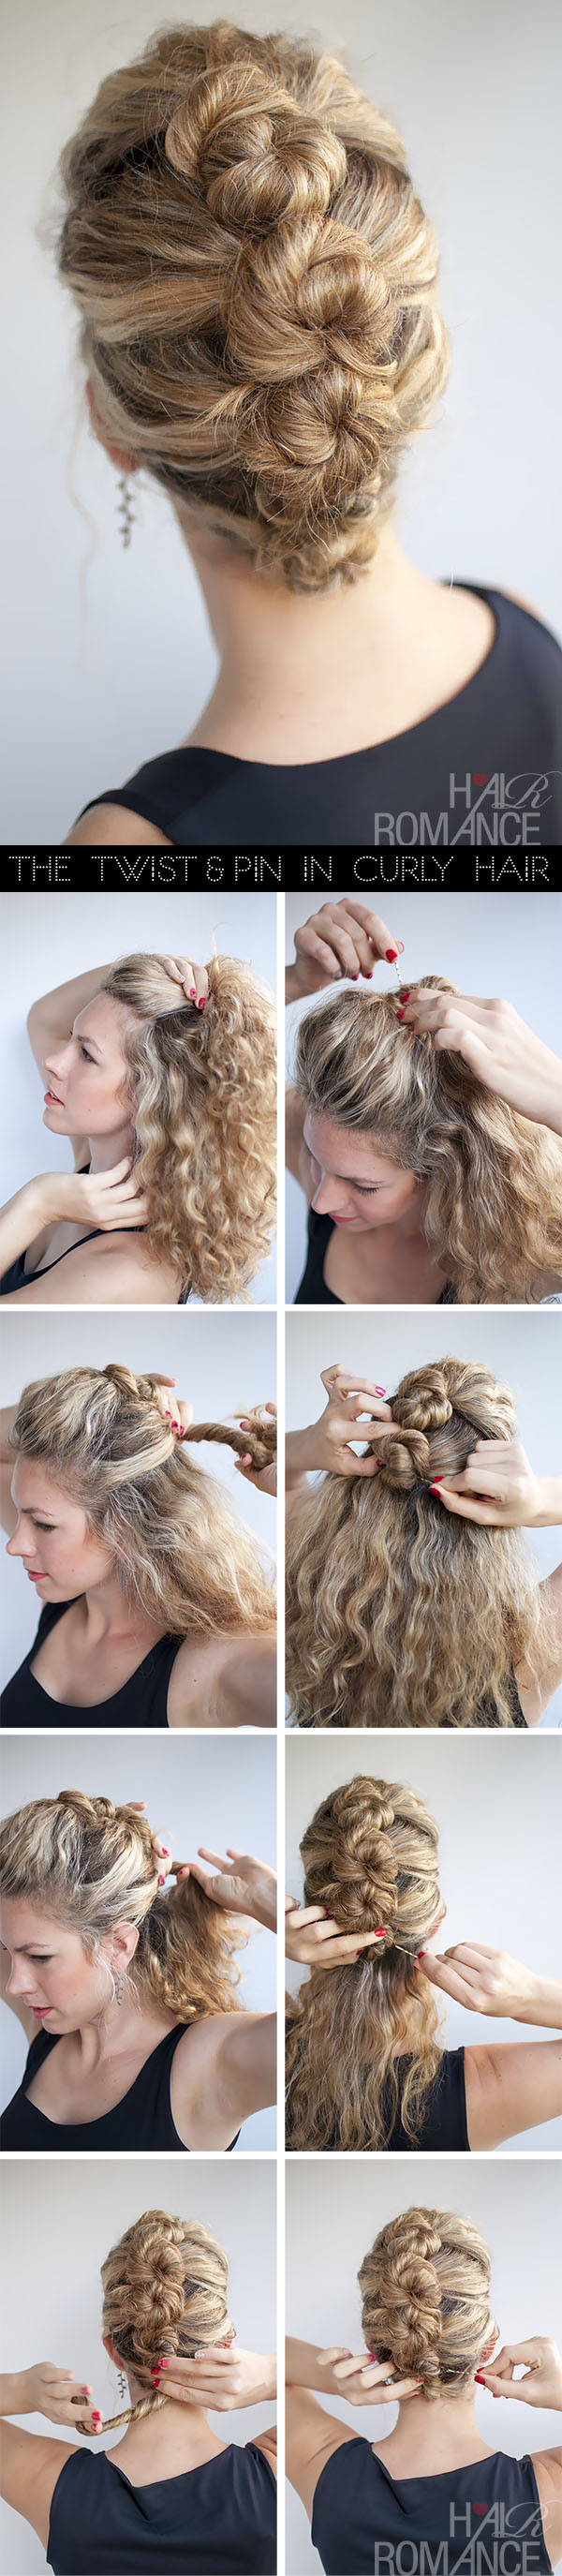 Hair Romance hairstyle tutorial - The French Twist and Pin in curly hair